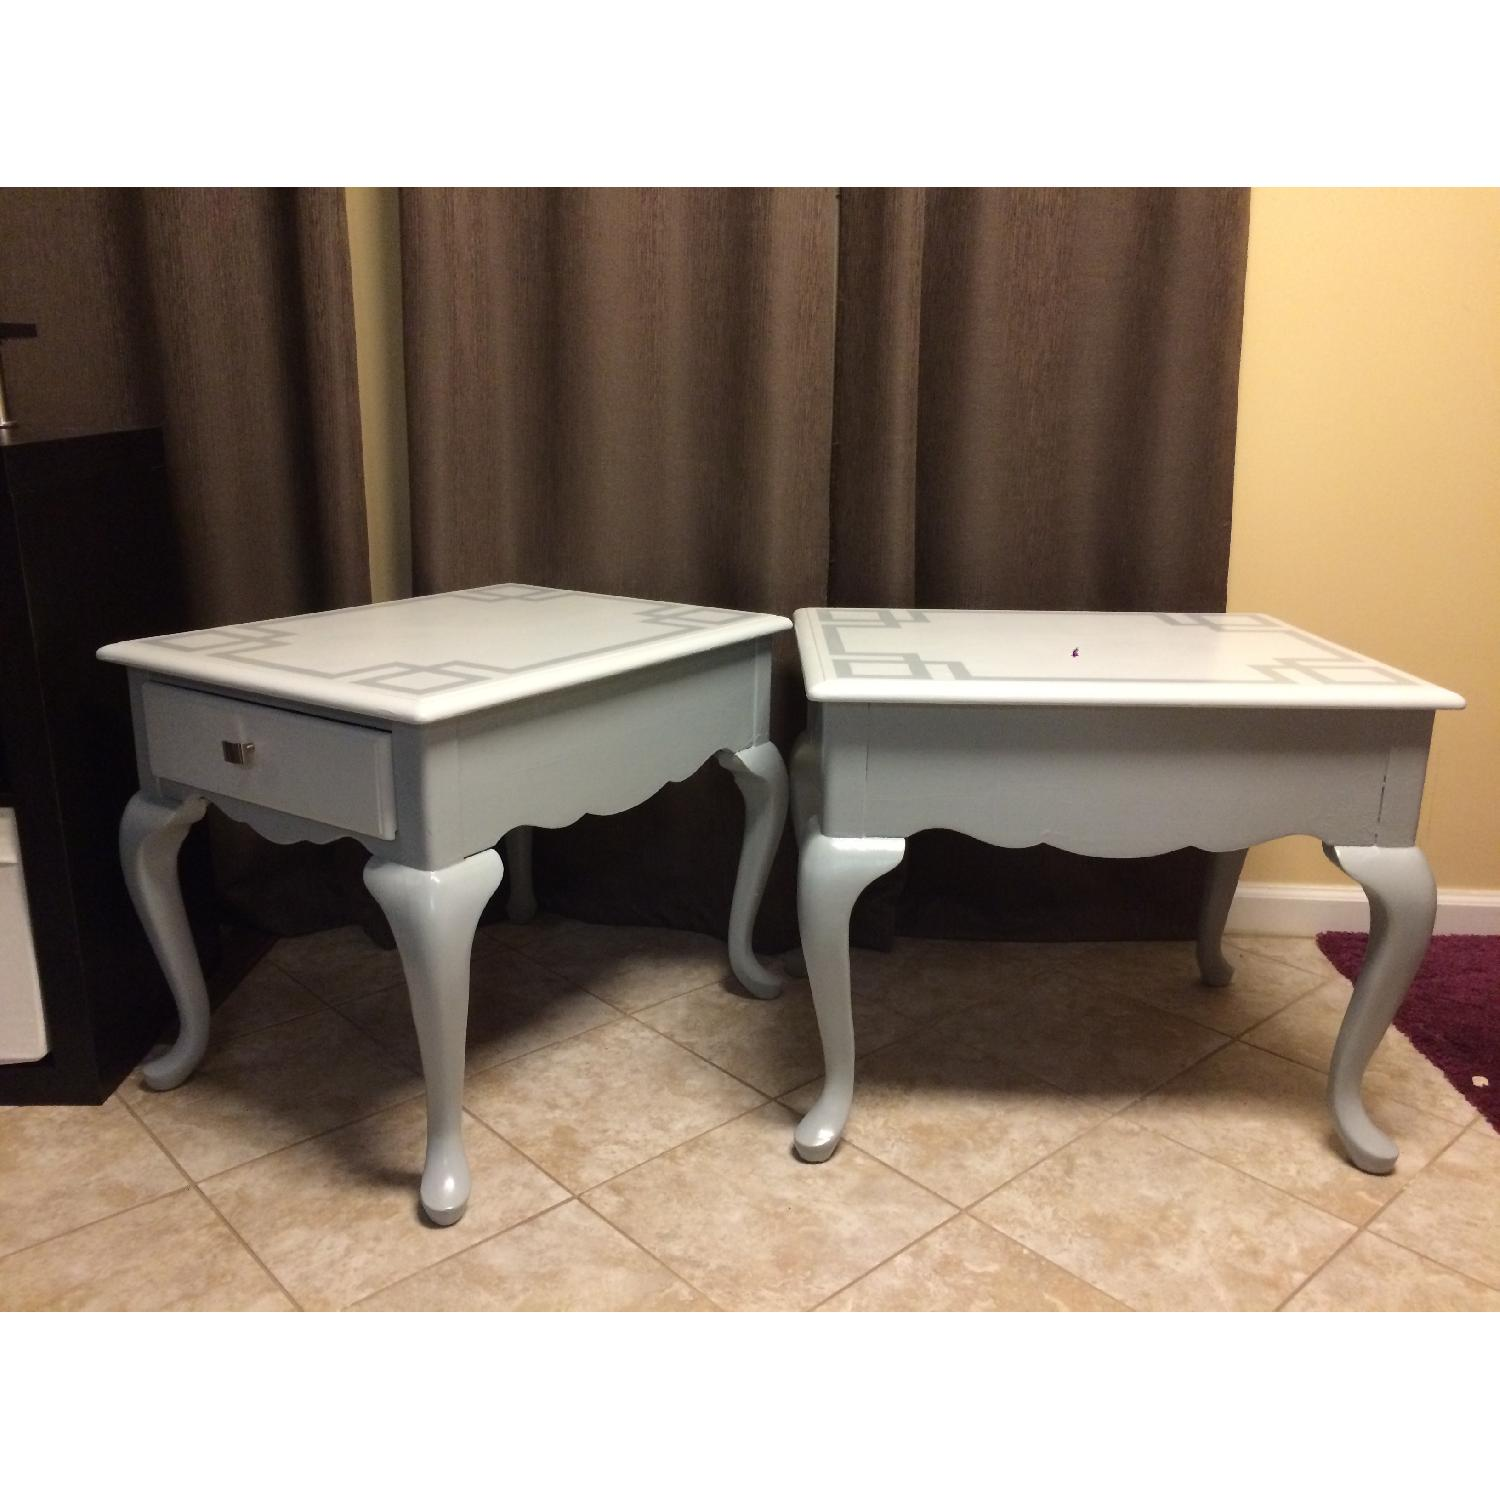 Ethan Allan Queen Anne Styled Side Tables in Gray - Pair - image-4